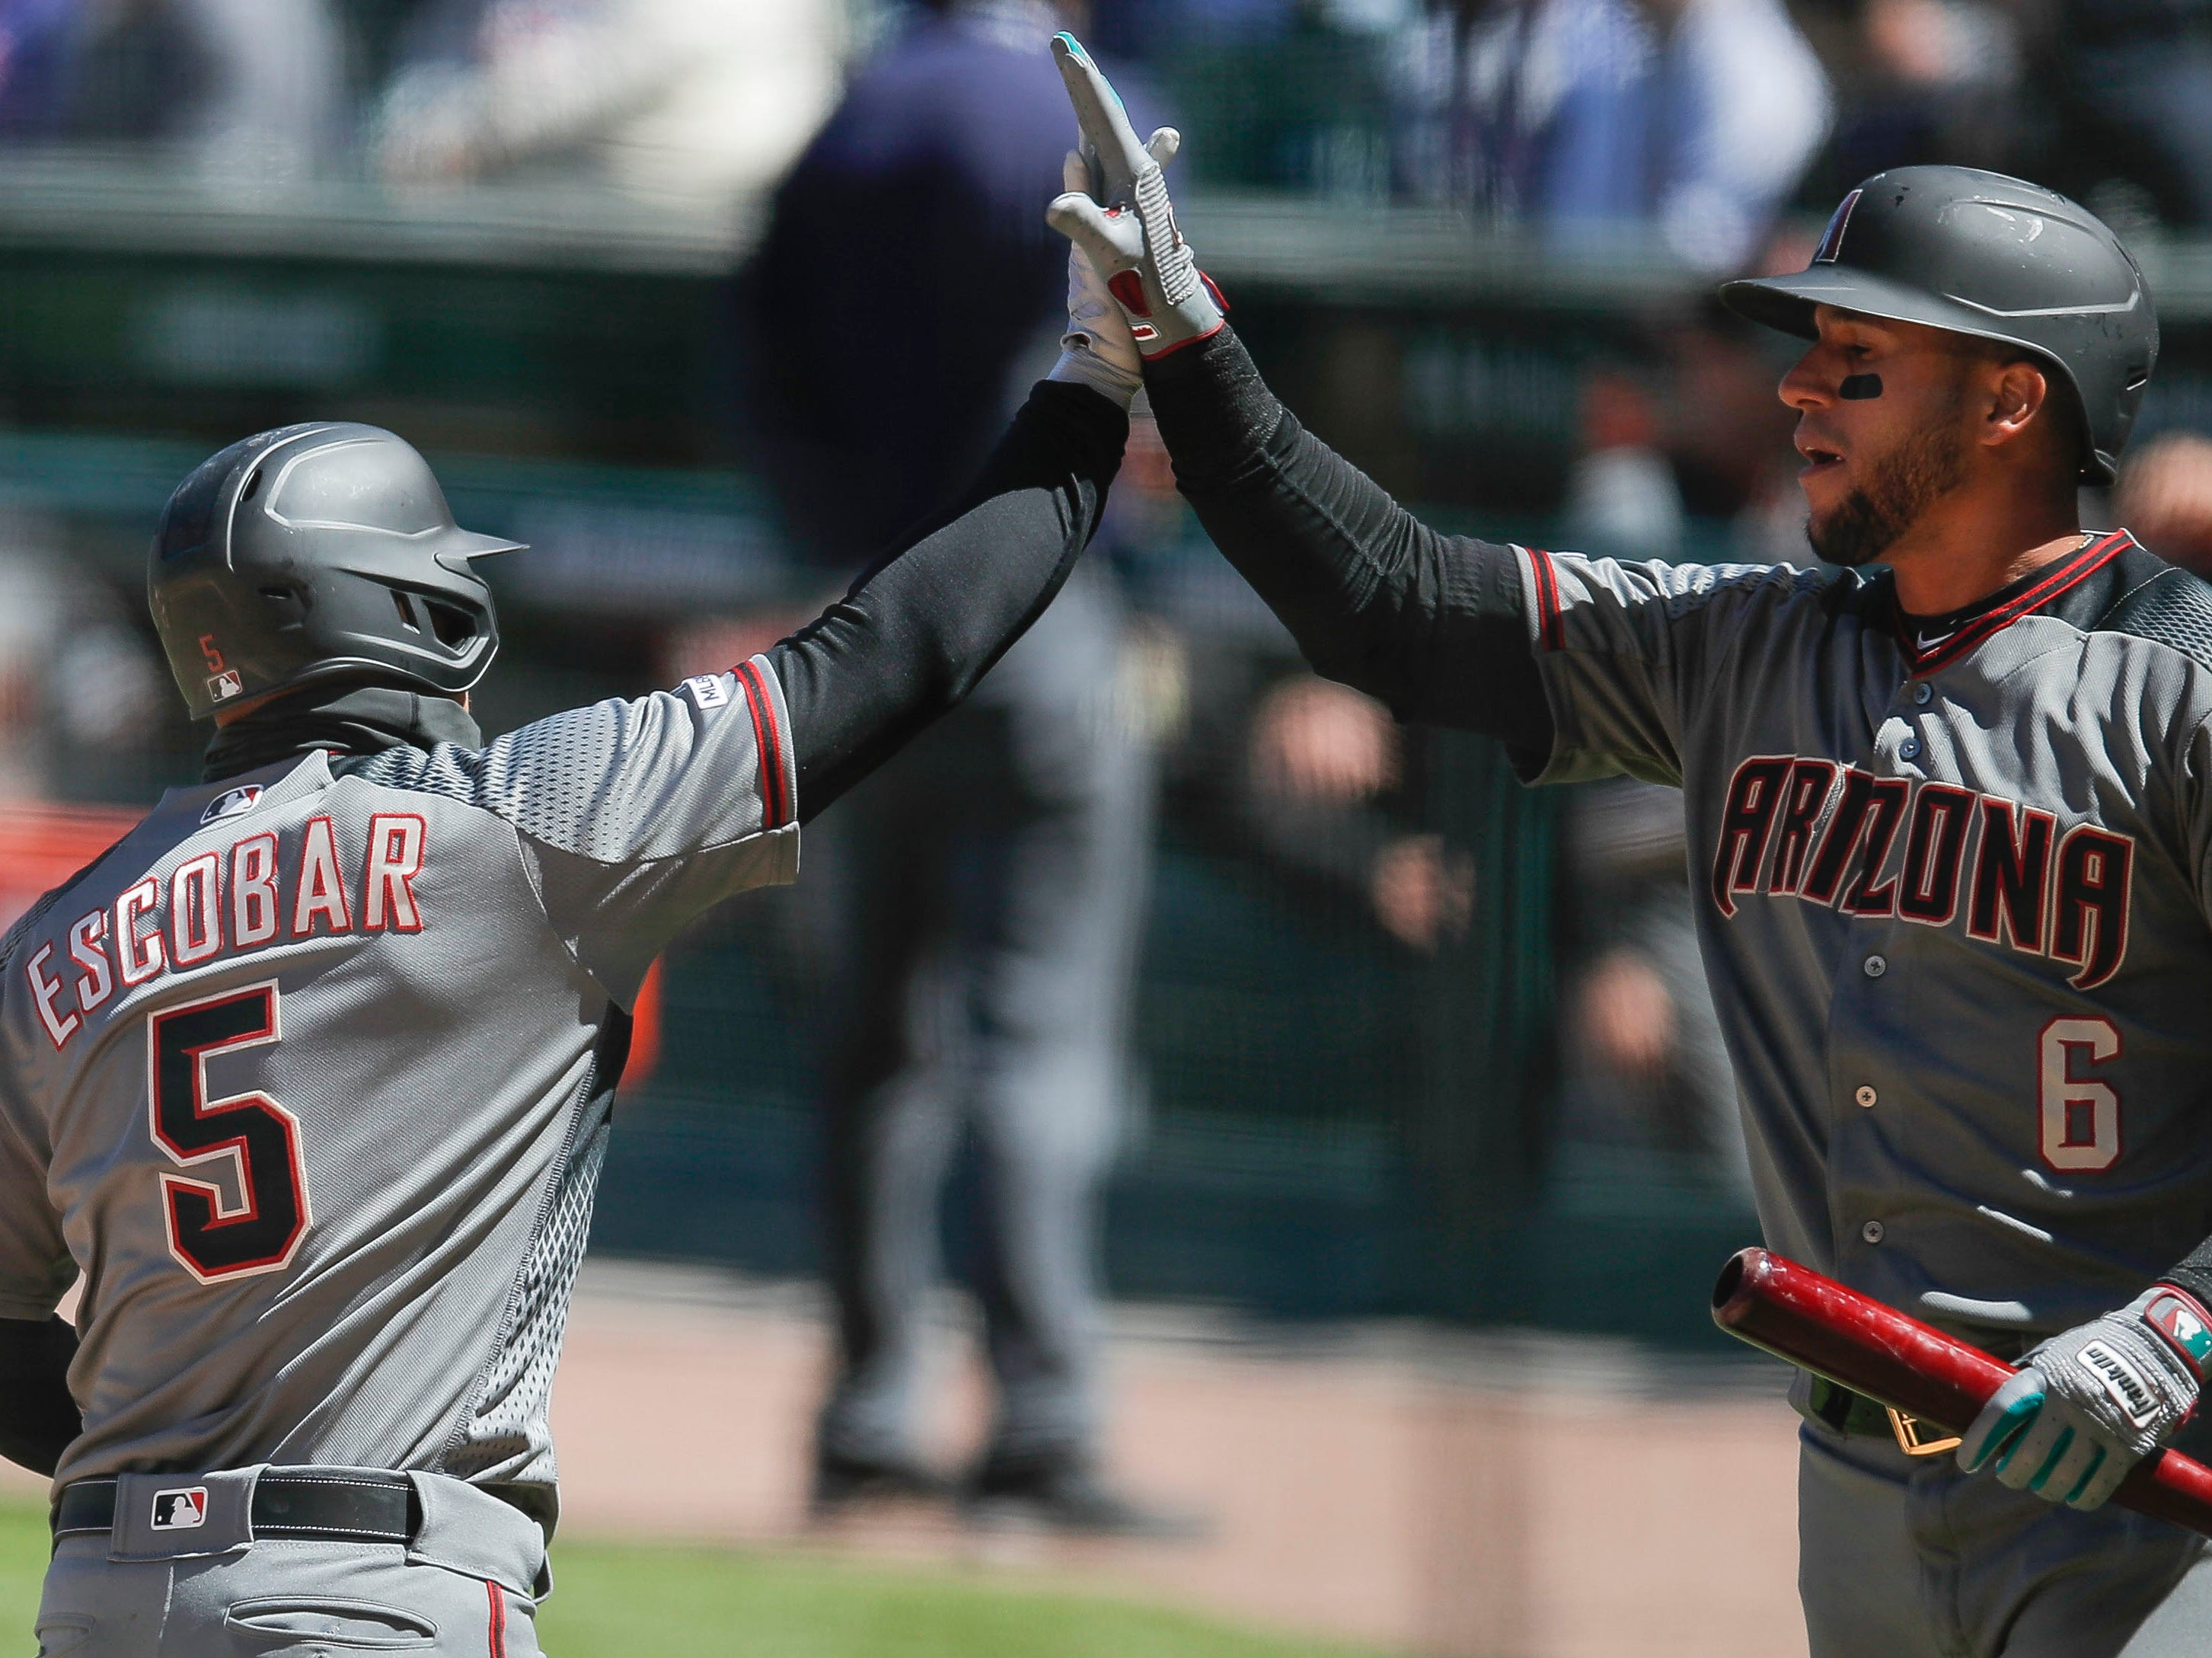 Diamondbacks third baseman Eduardo Escobar (5) celebrates his home run against the Cubs with right fielder David Peralta (6) during the first inning of a game April 20 at Wrigley Field.